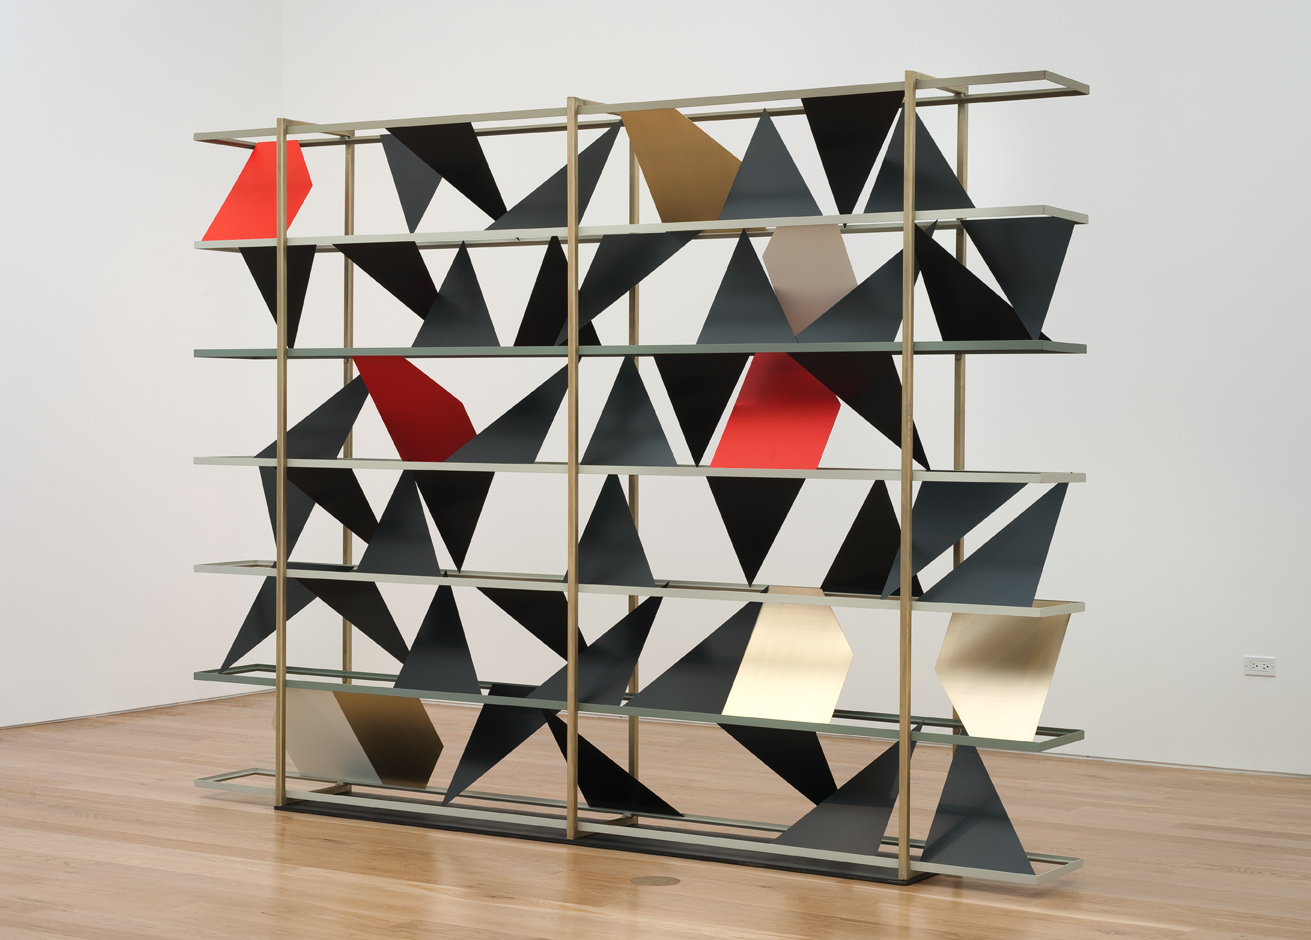 Untitled (screen), 2011-2012  Powder coated steel, brass plated steel and enamel  84 x 120 x 12 inches  213.36 x 304.8 x 30.48 cm